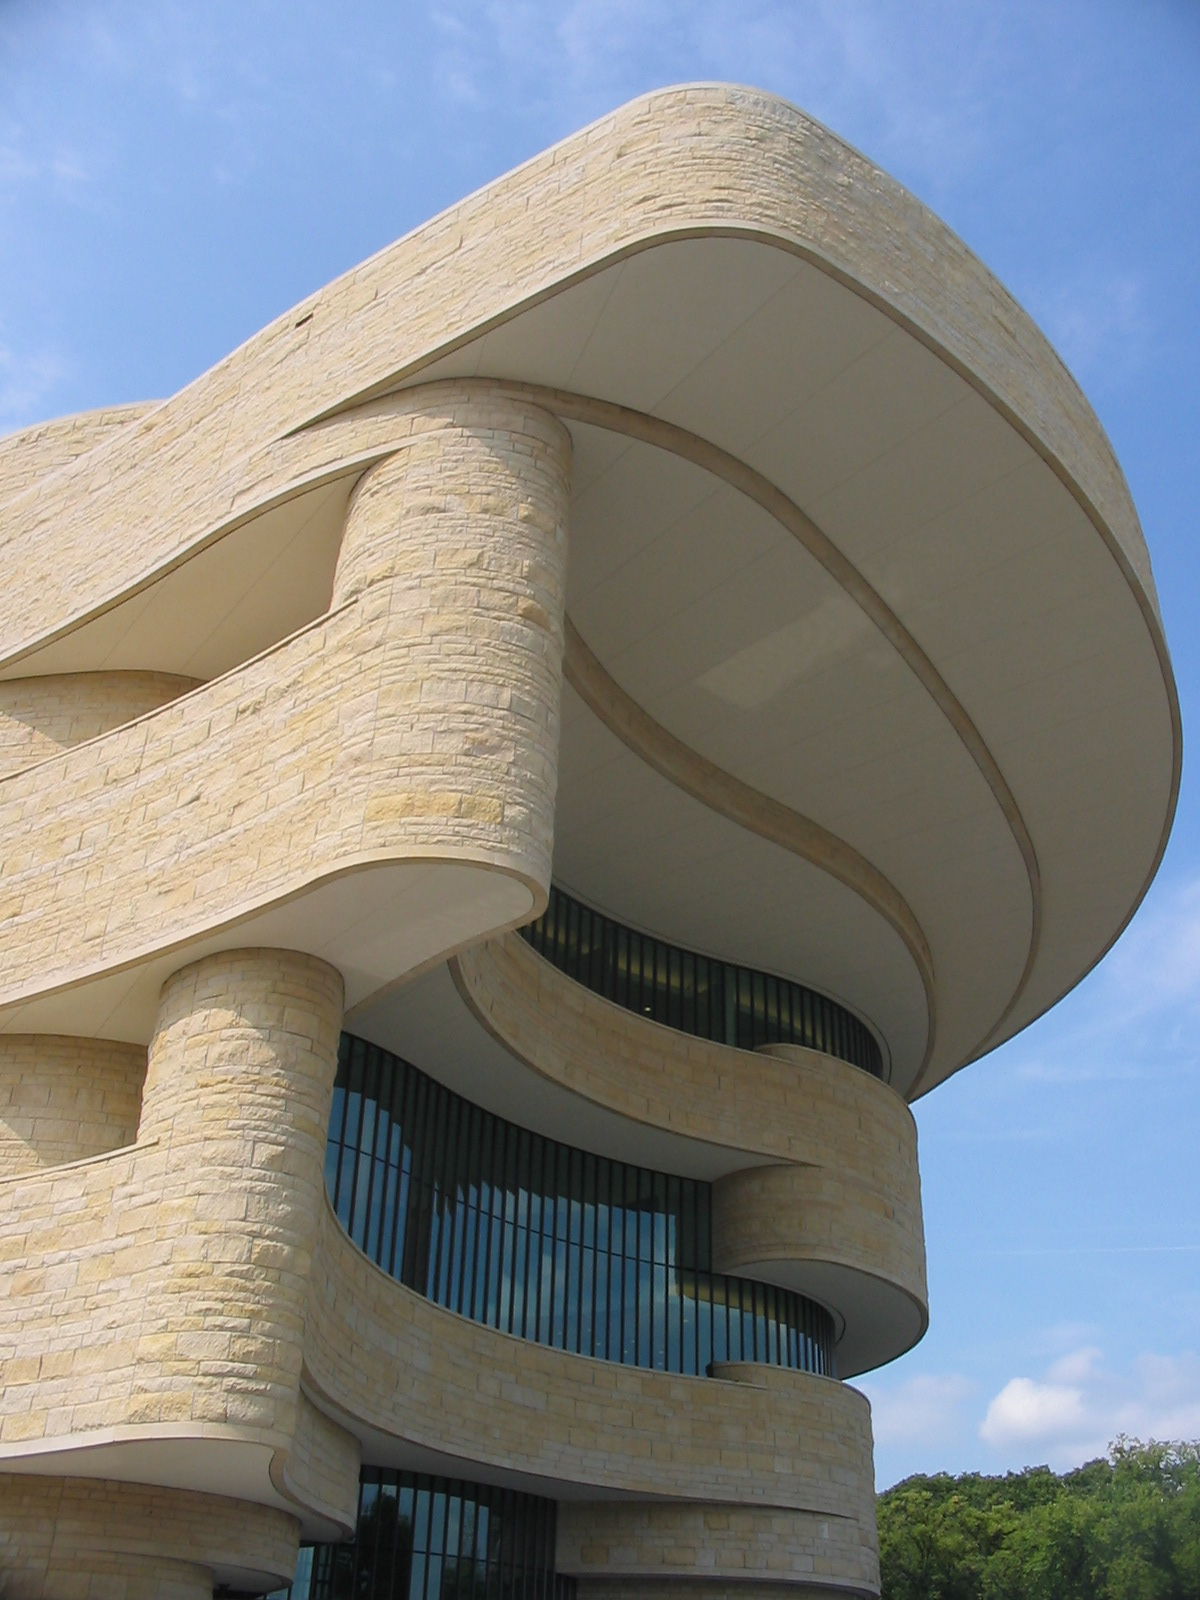 Nat'l Museum of American Indian